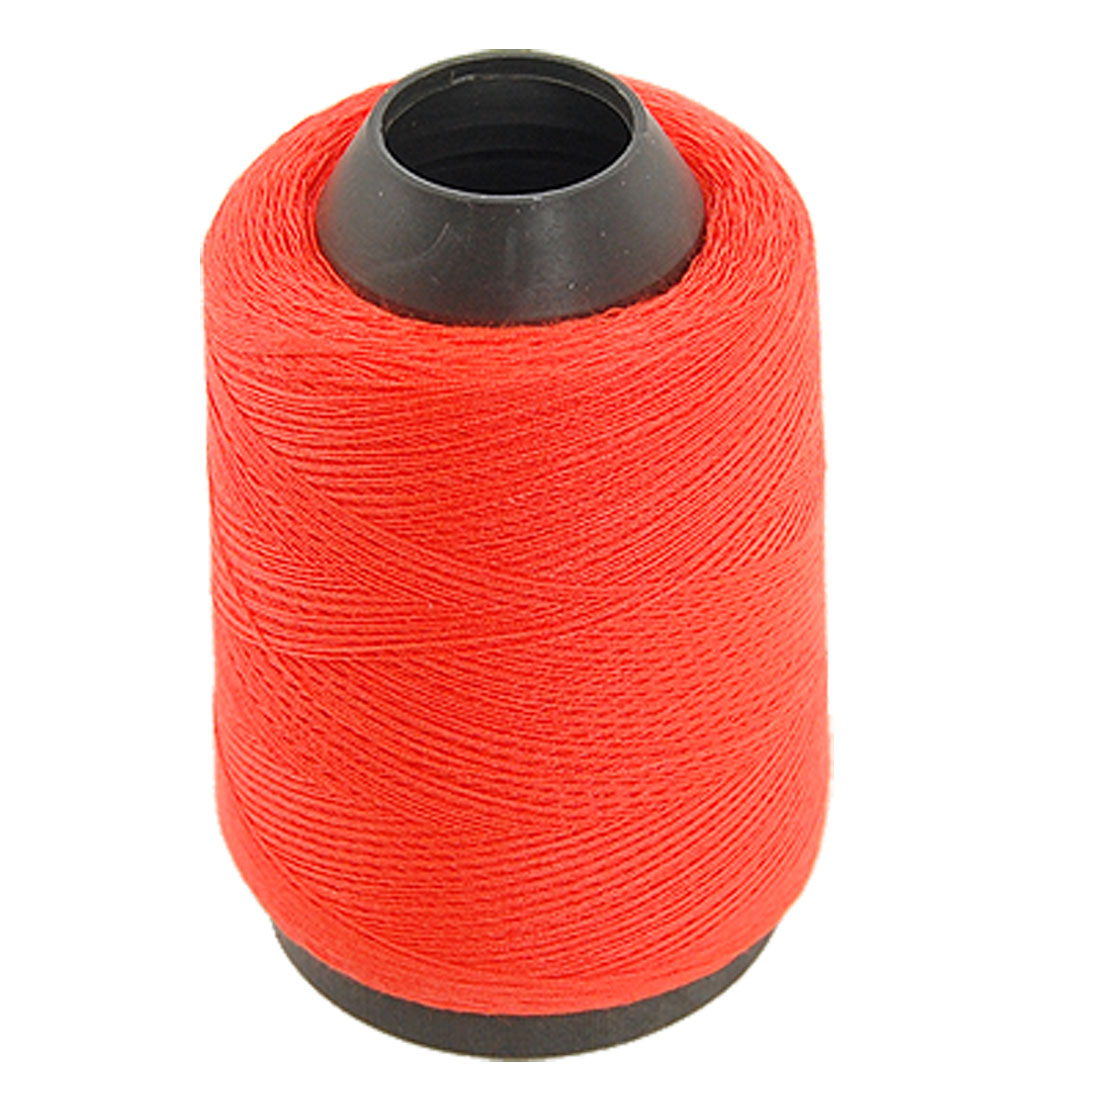 Orange Sewing Thread Cord Reel Spool for Tailor